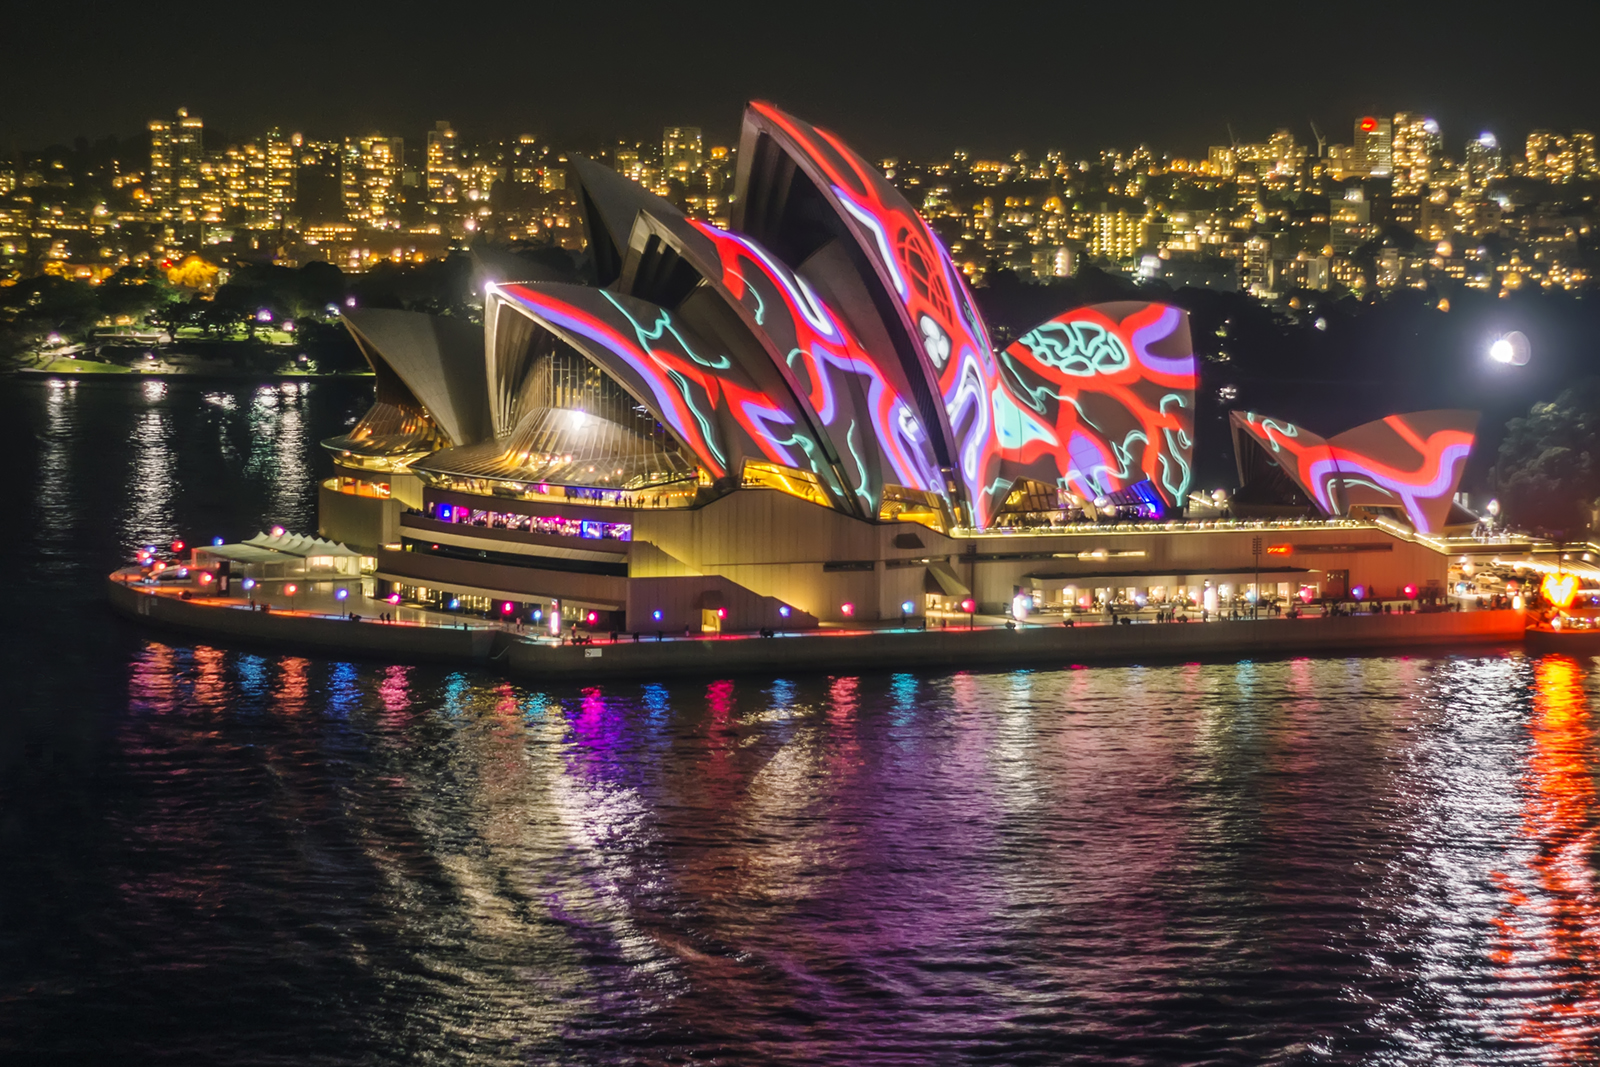 Sydney Opera House with VIVID Sydney light projections